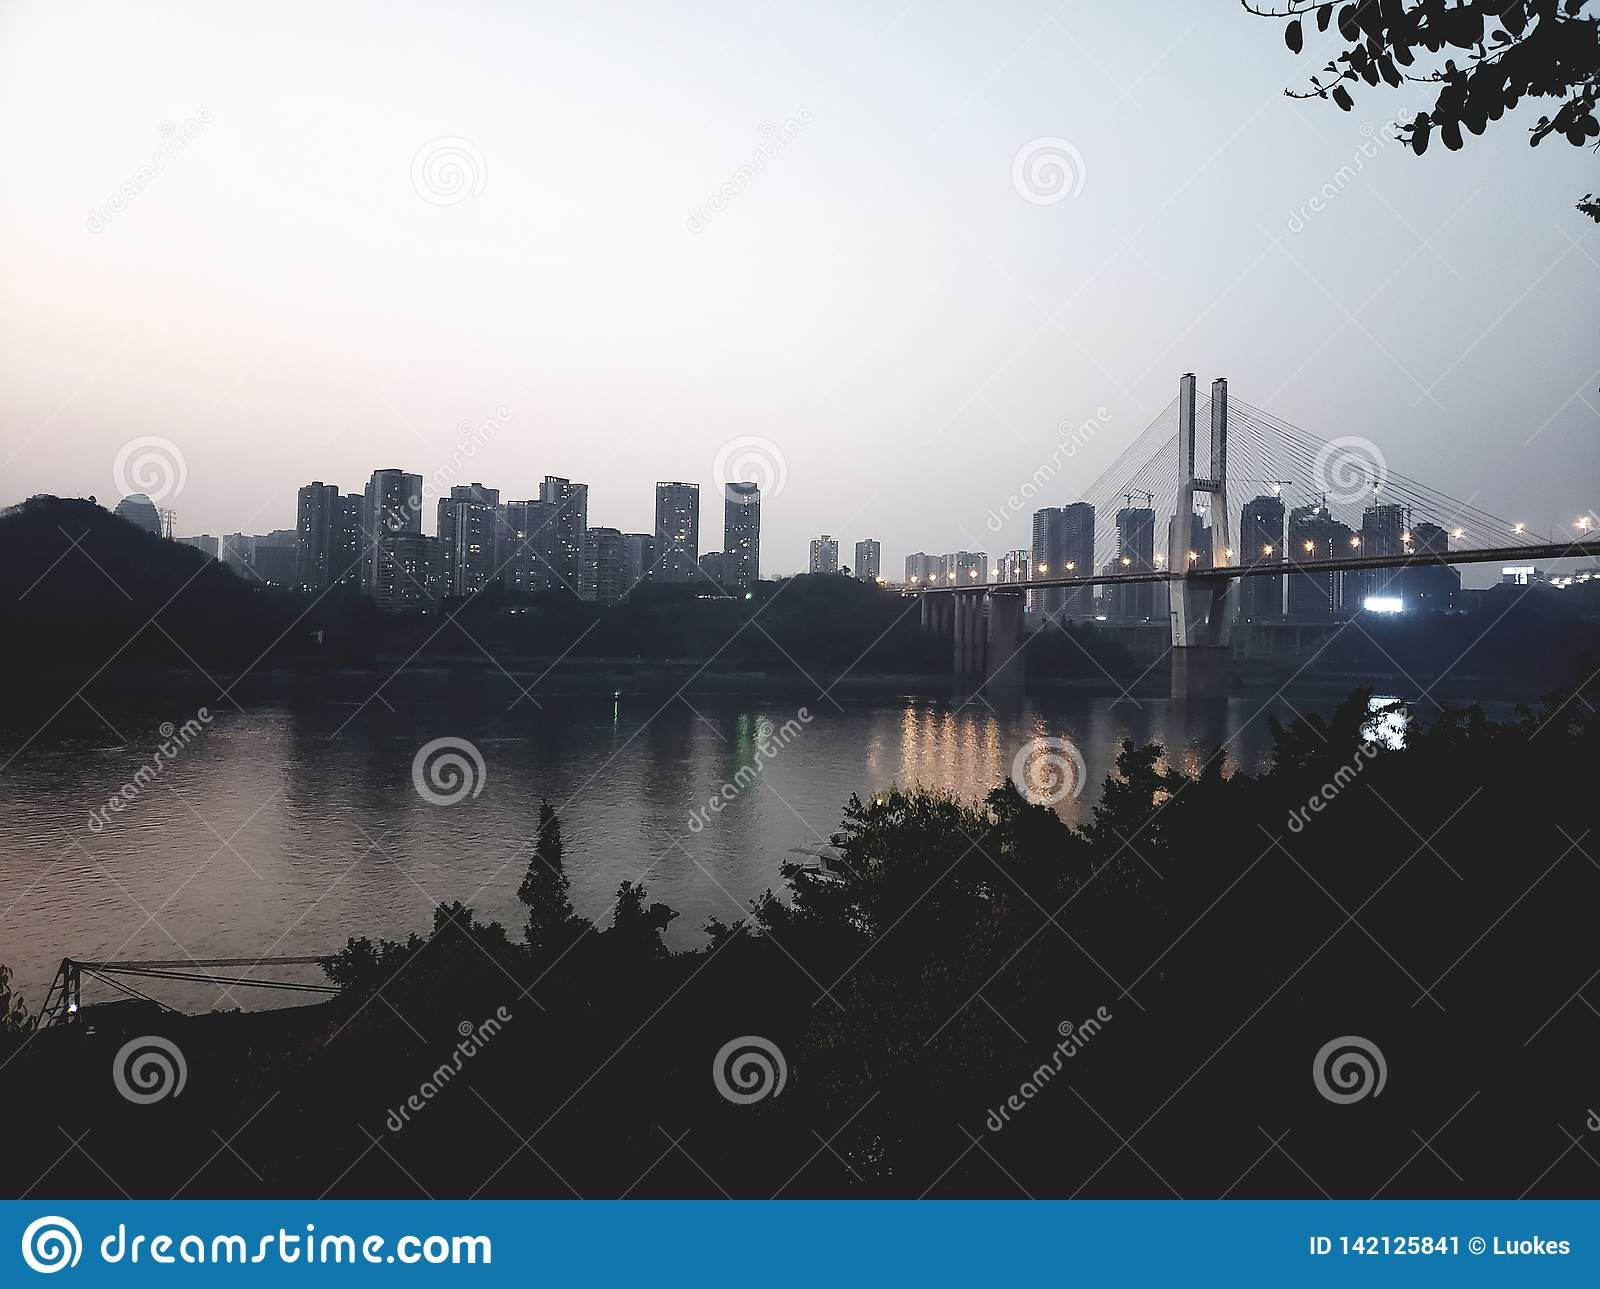 ChangJiang River in ChongQing